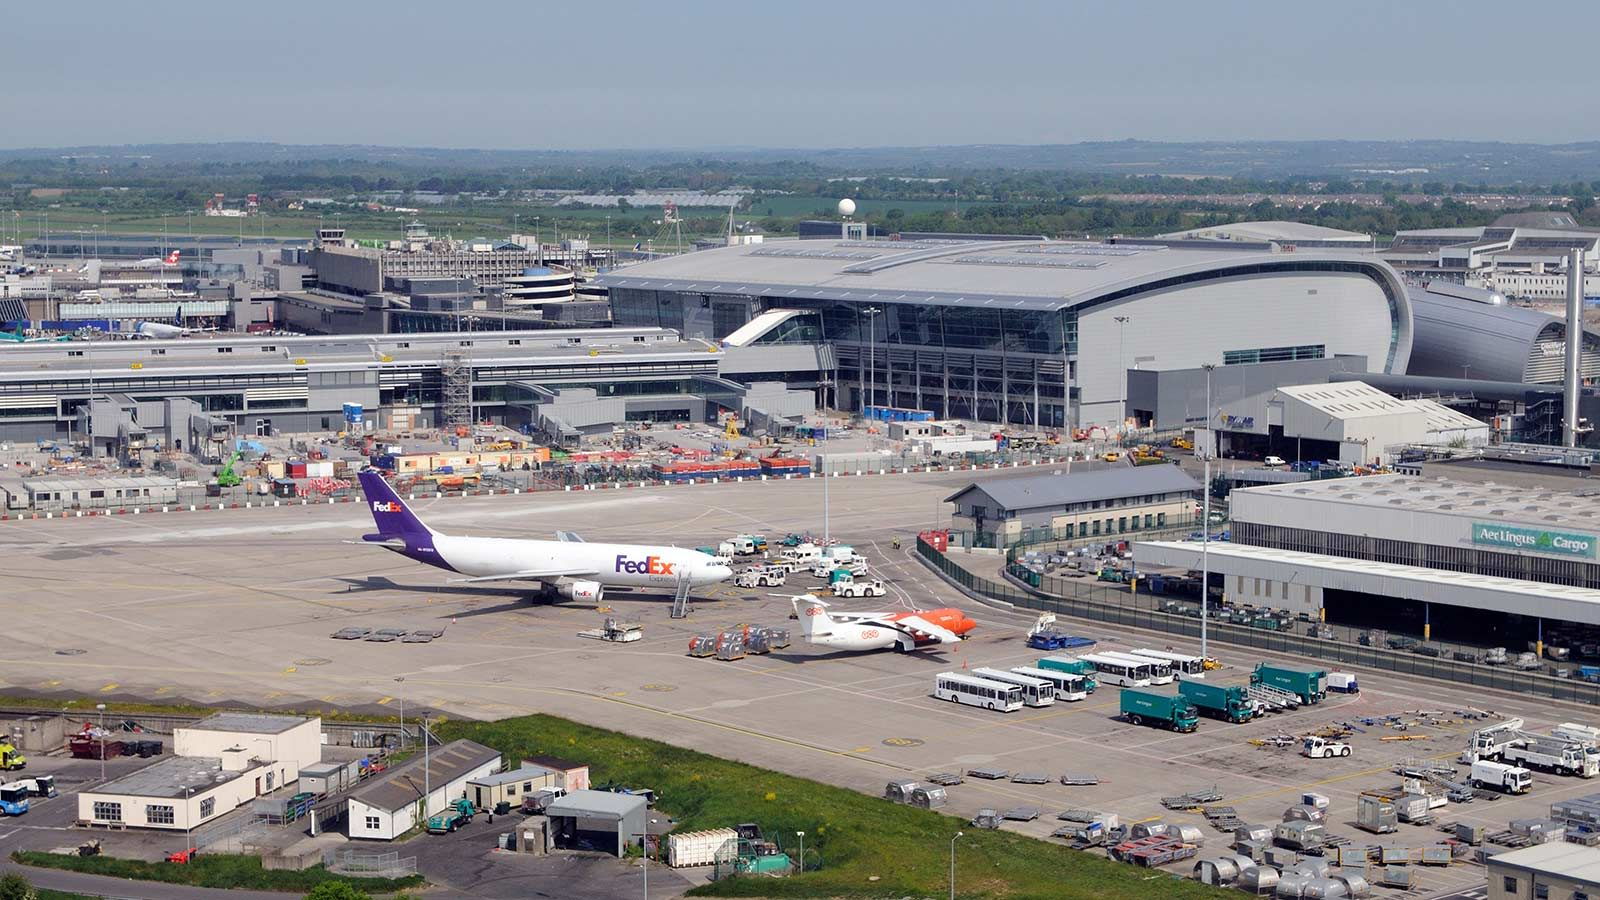 Aerial View of Dublin Airport Parked Planes  - Mace Group